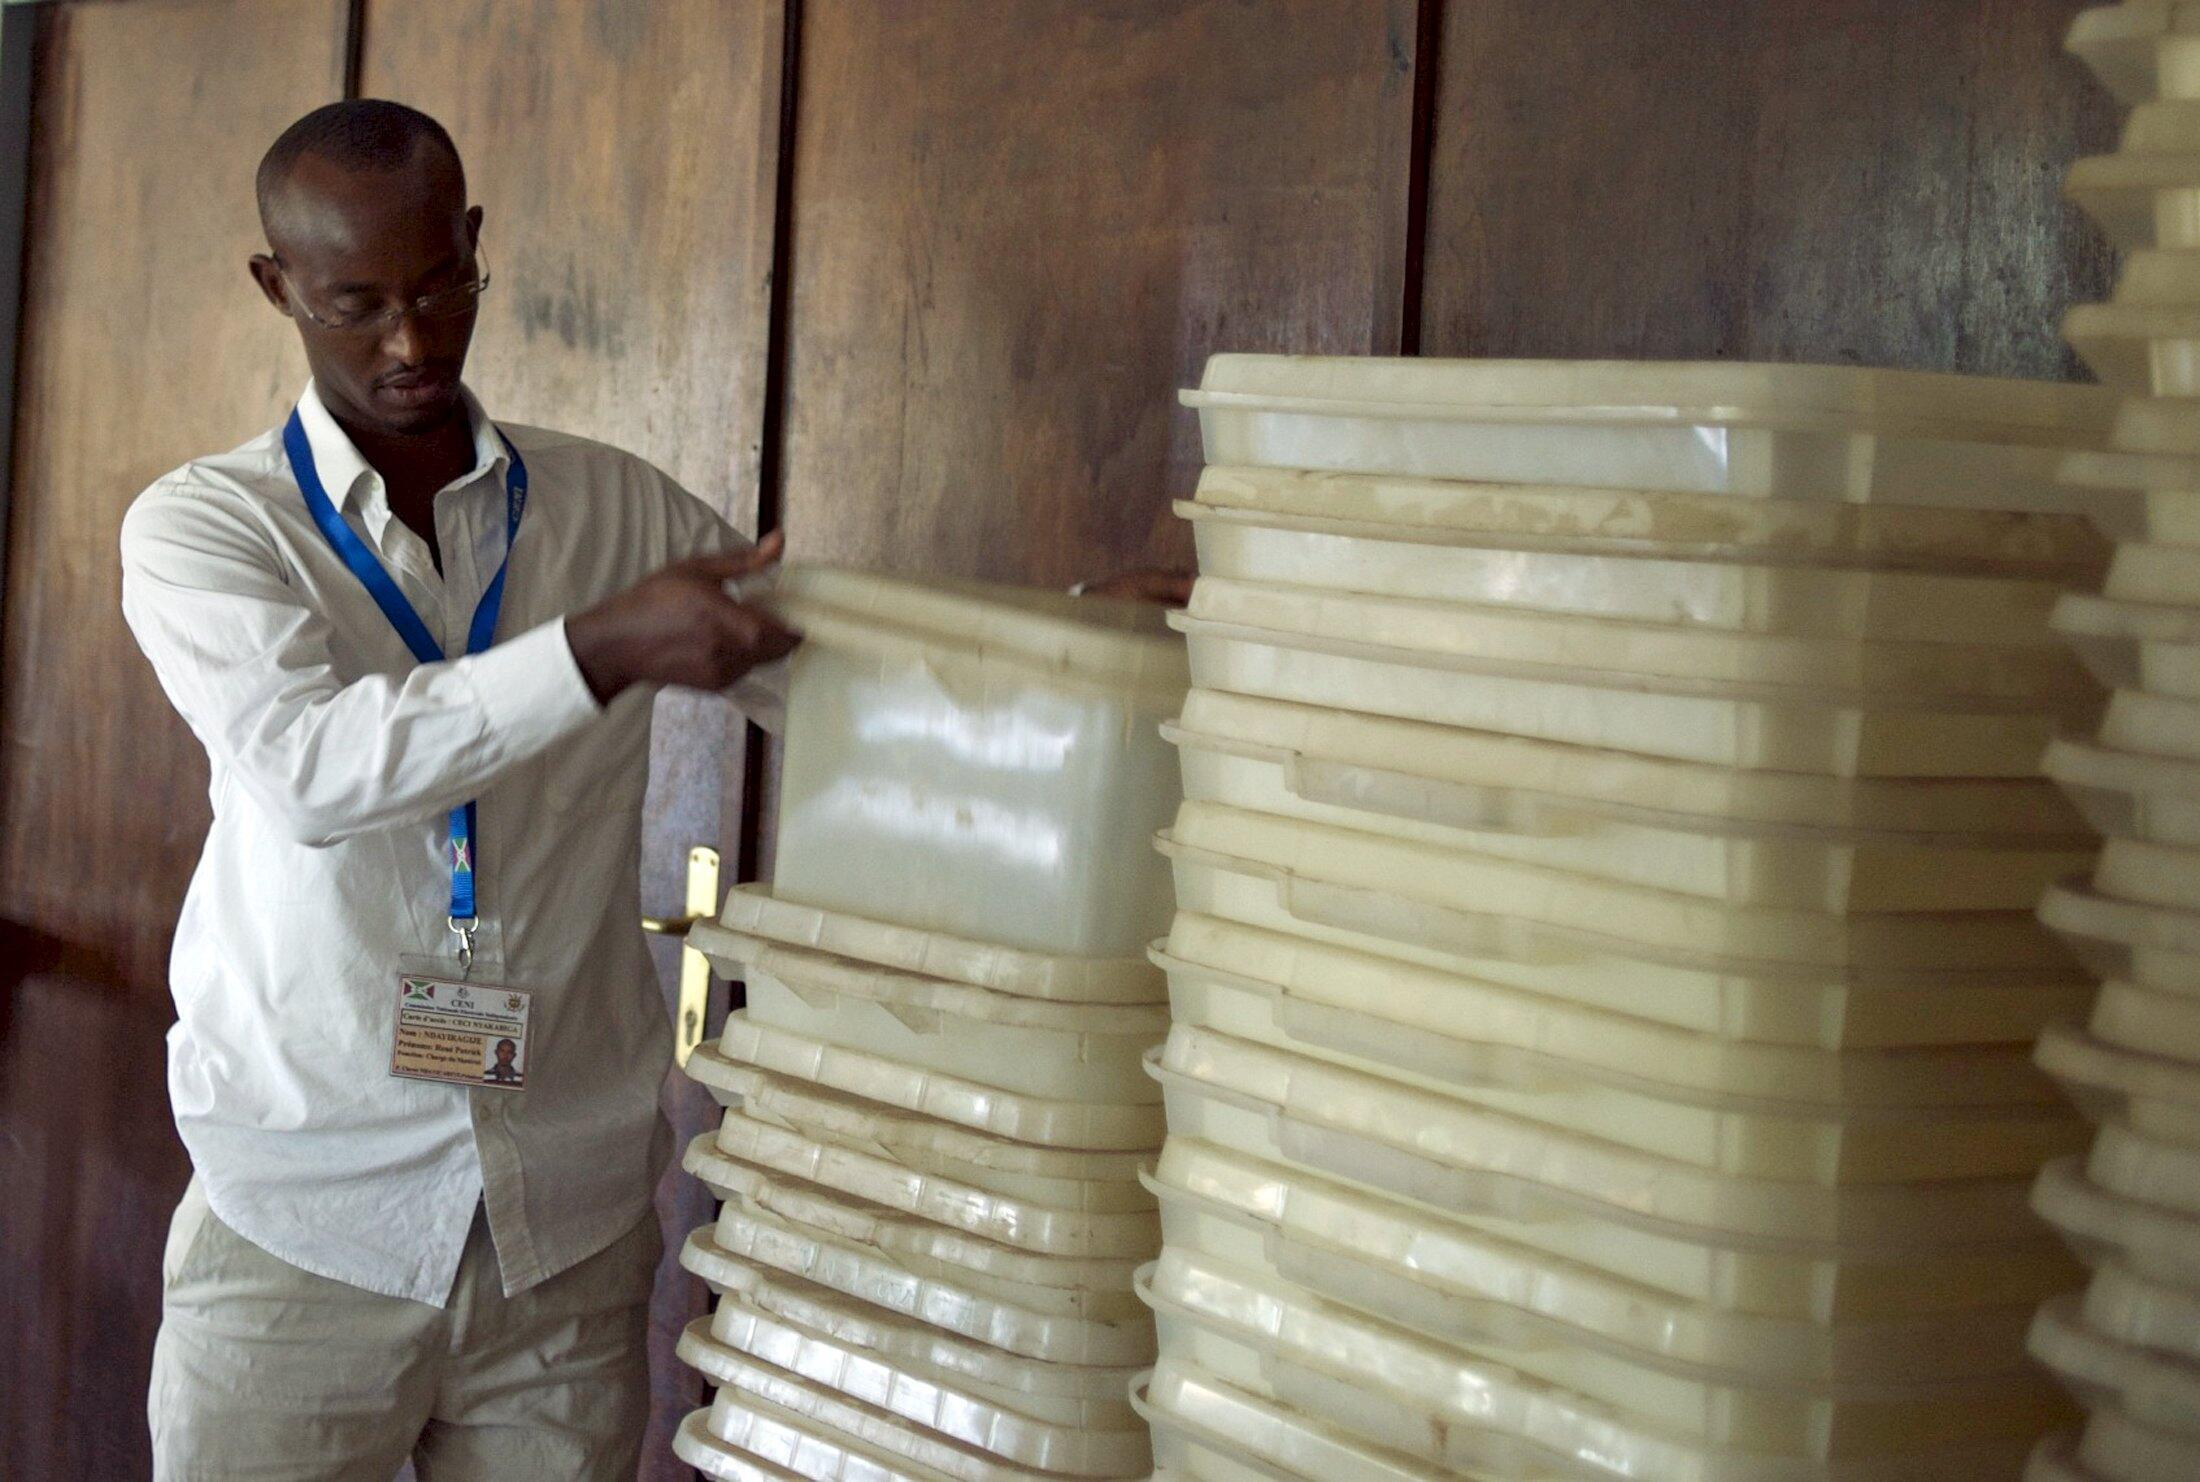 A member of Burundi's National Electoral Commission counts ballot boxes at a warehouse used to store electoral material for the upcoming parliamentary elections, in the neighbourhood of Nyakabiga near the capital Bujumbura, 28 June 2015.